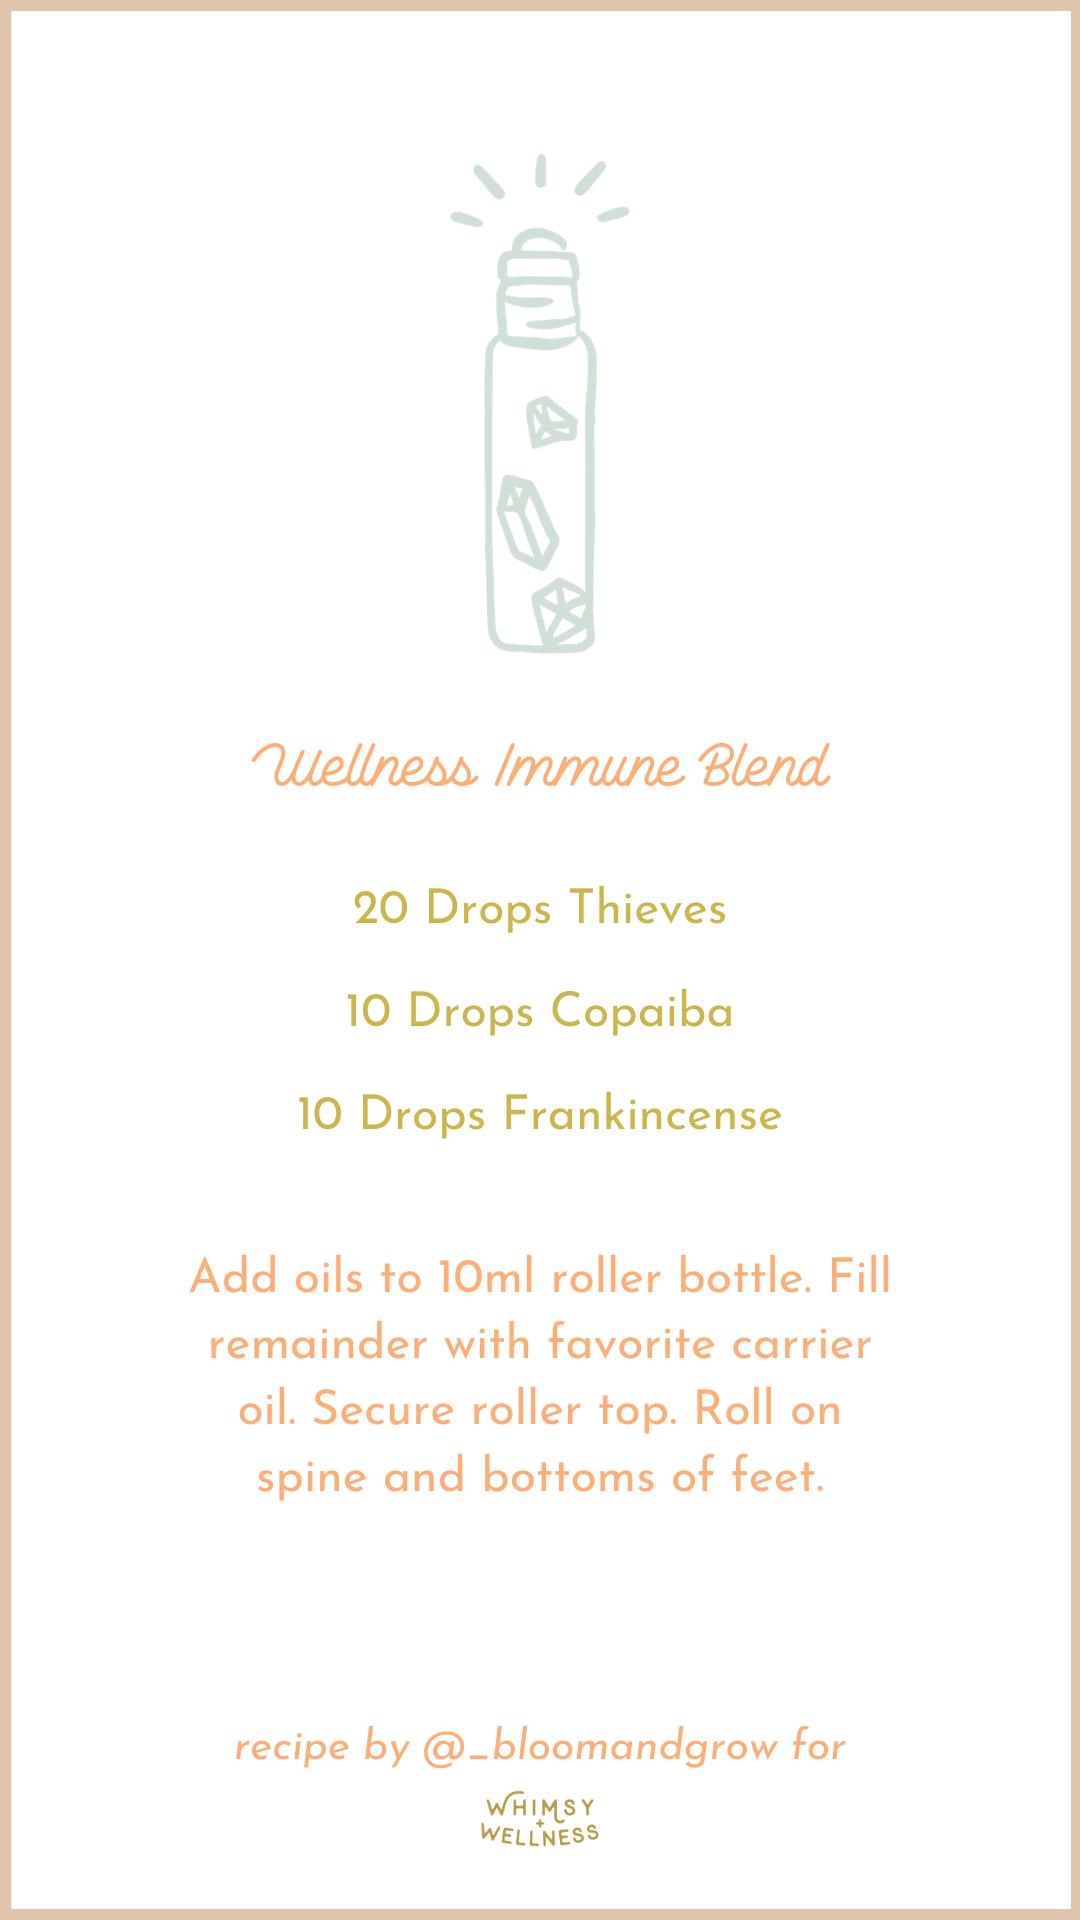 Wellness Roller Blend with Young Living Essential Oils for Immune Support